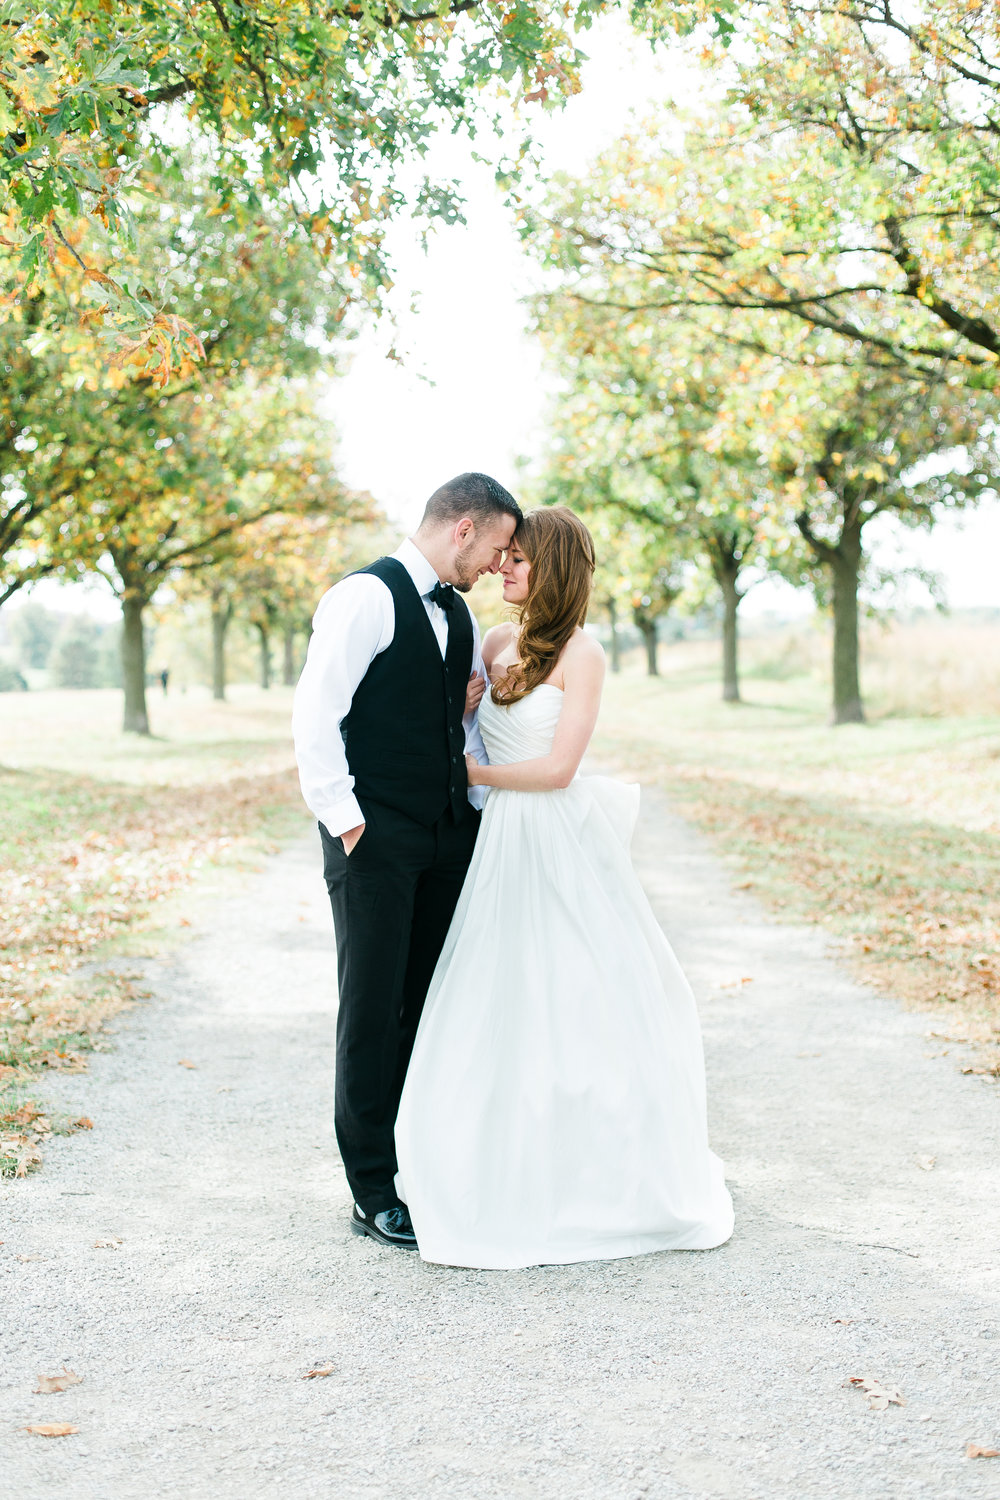 Rachelle and Richard - Oct2015-72.jpg